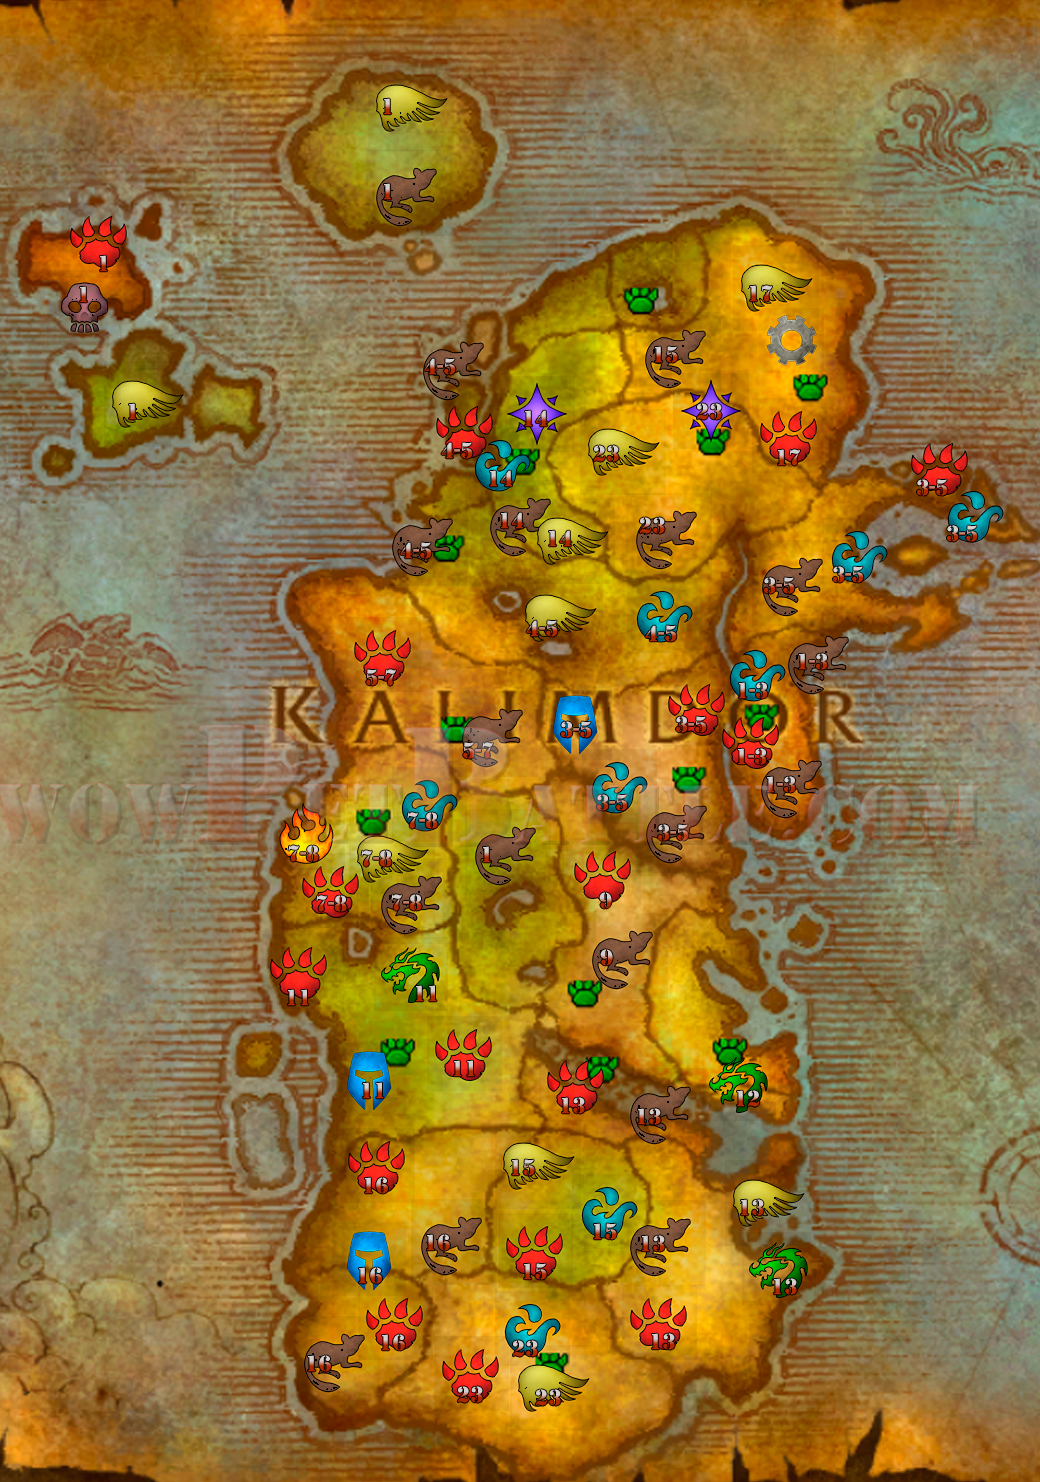 Battle Pet Leveling Guide kalimdor on molten core map, eastern kingdoms map, guild wars 2 gendarran fields map, dragonblight map, stormwind map, undercity map, ashenvale map, azeroth map, netherstorm map, darkshore map, desolace map, dustwallow marsh map, thousand needles map, draenor map, orgrimmar map, lordaeron map, wrath of the lich king map, emerald dream map, wow fossil dig sites map, bloodmyst isle map,